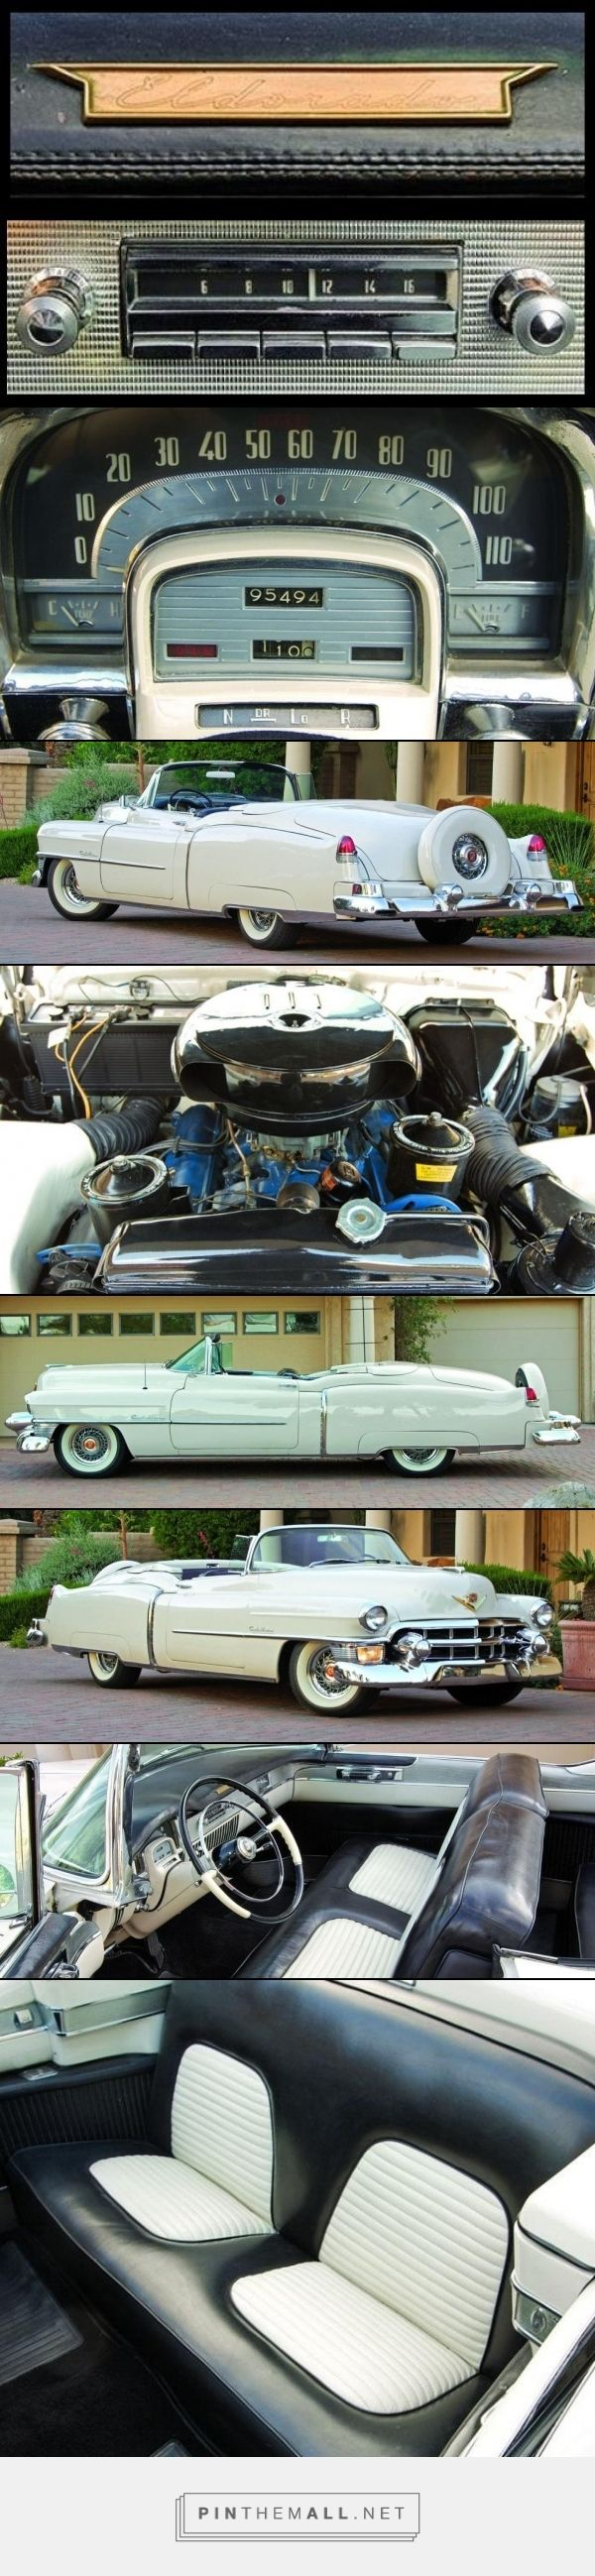 1953 CADILLAC ELDORADO Body Style: Two-door, four-seat convertible Engine Type…